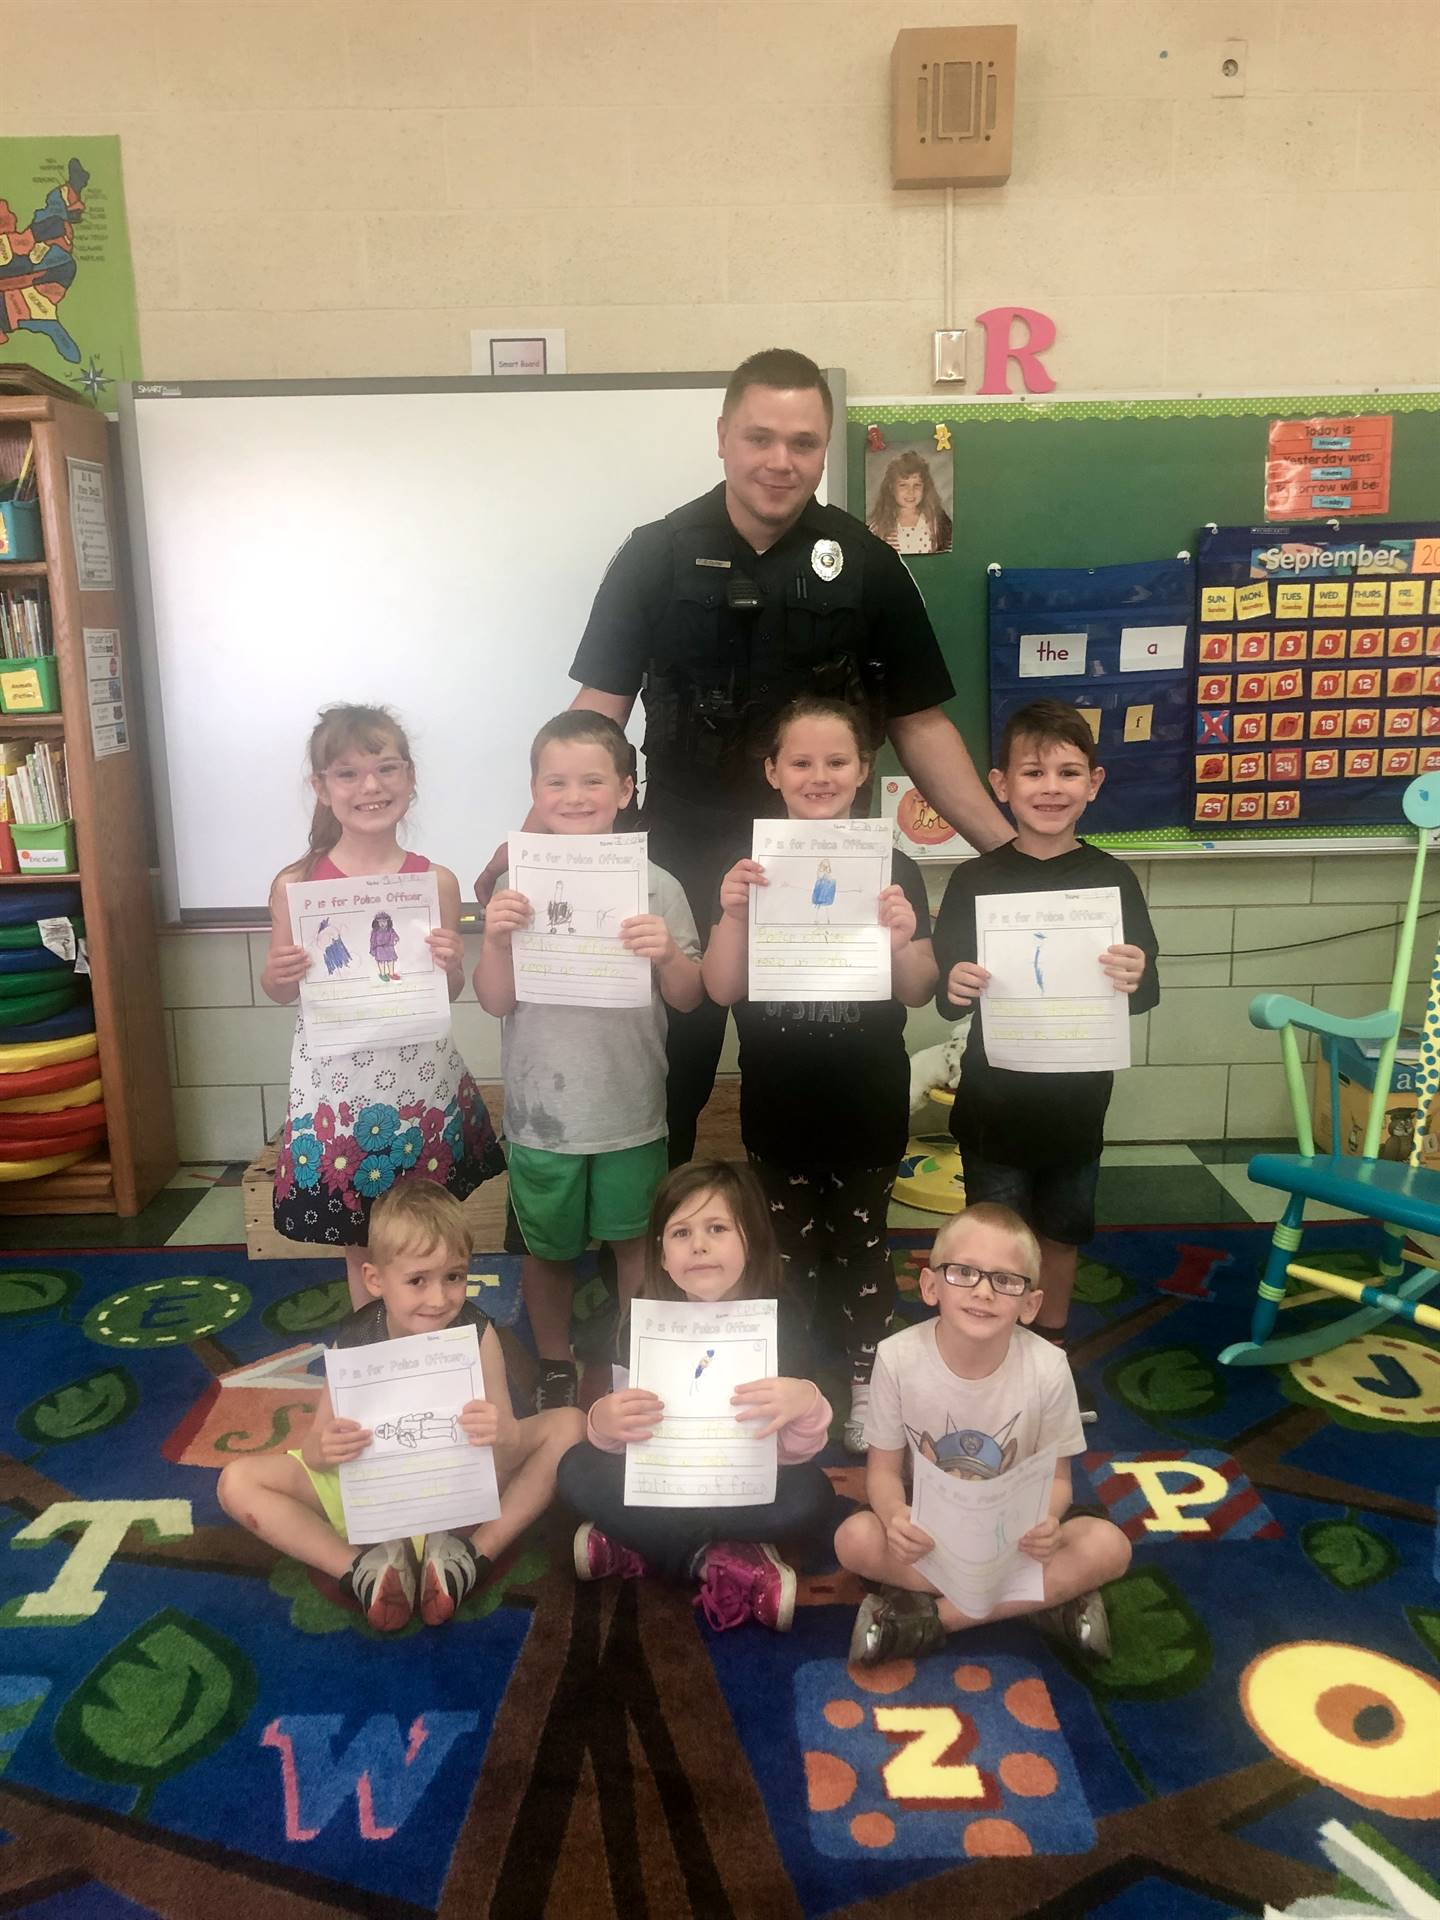 Kindergarten students are learning about community helpers!